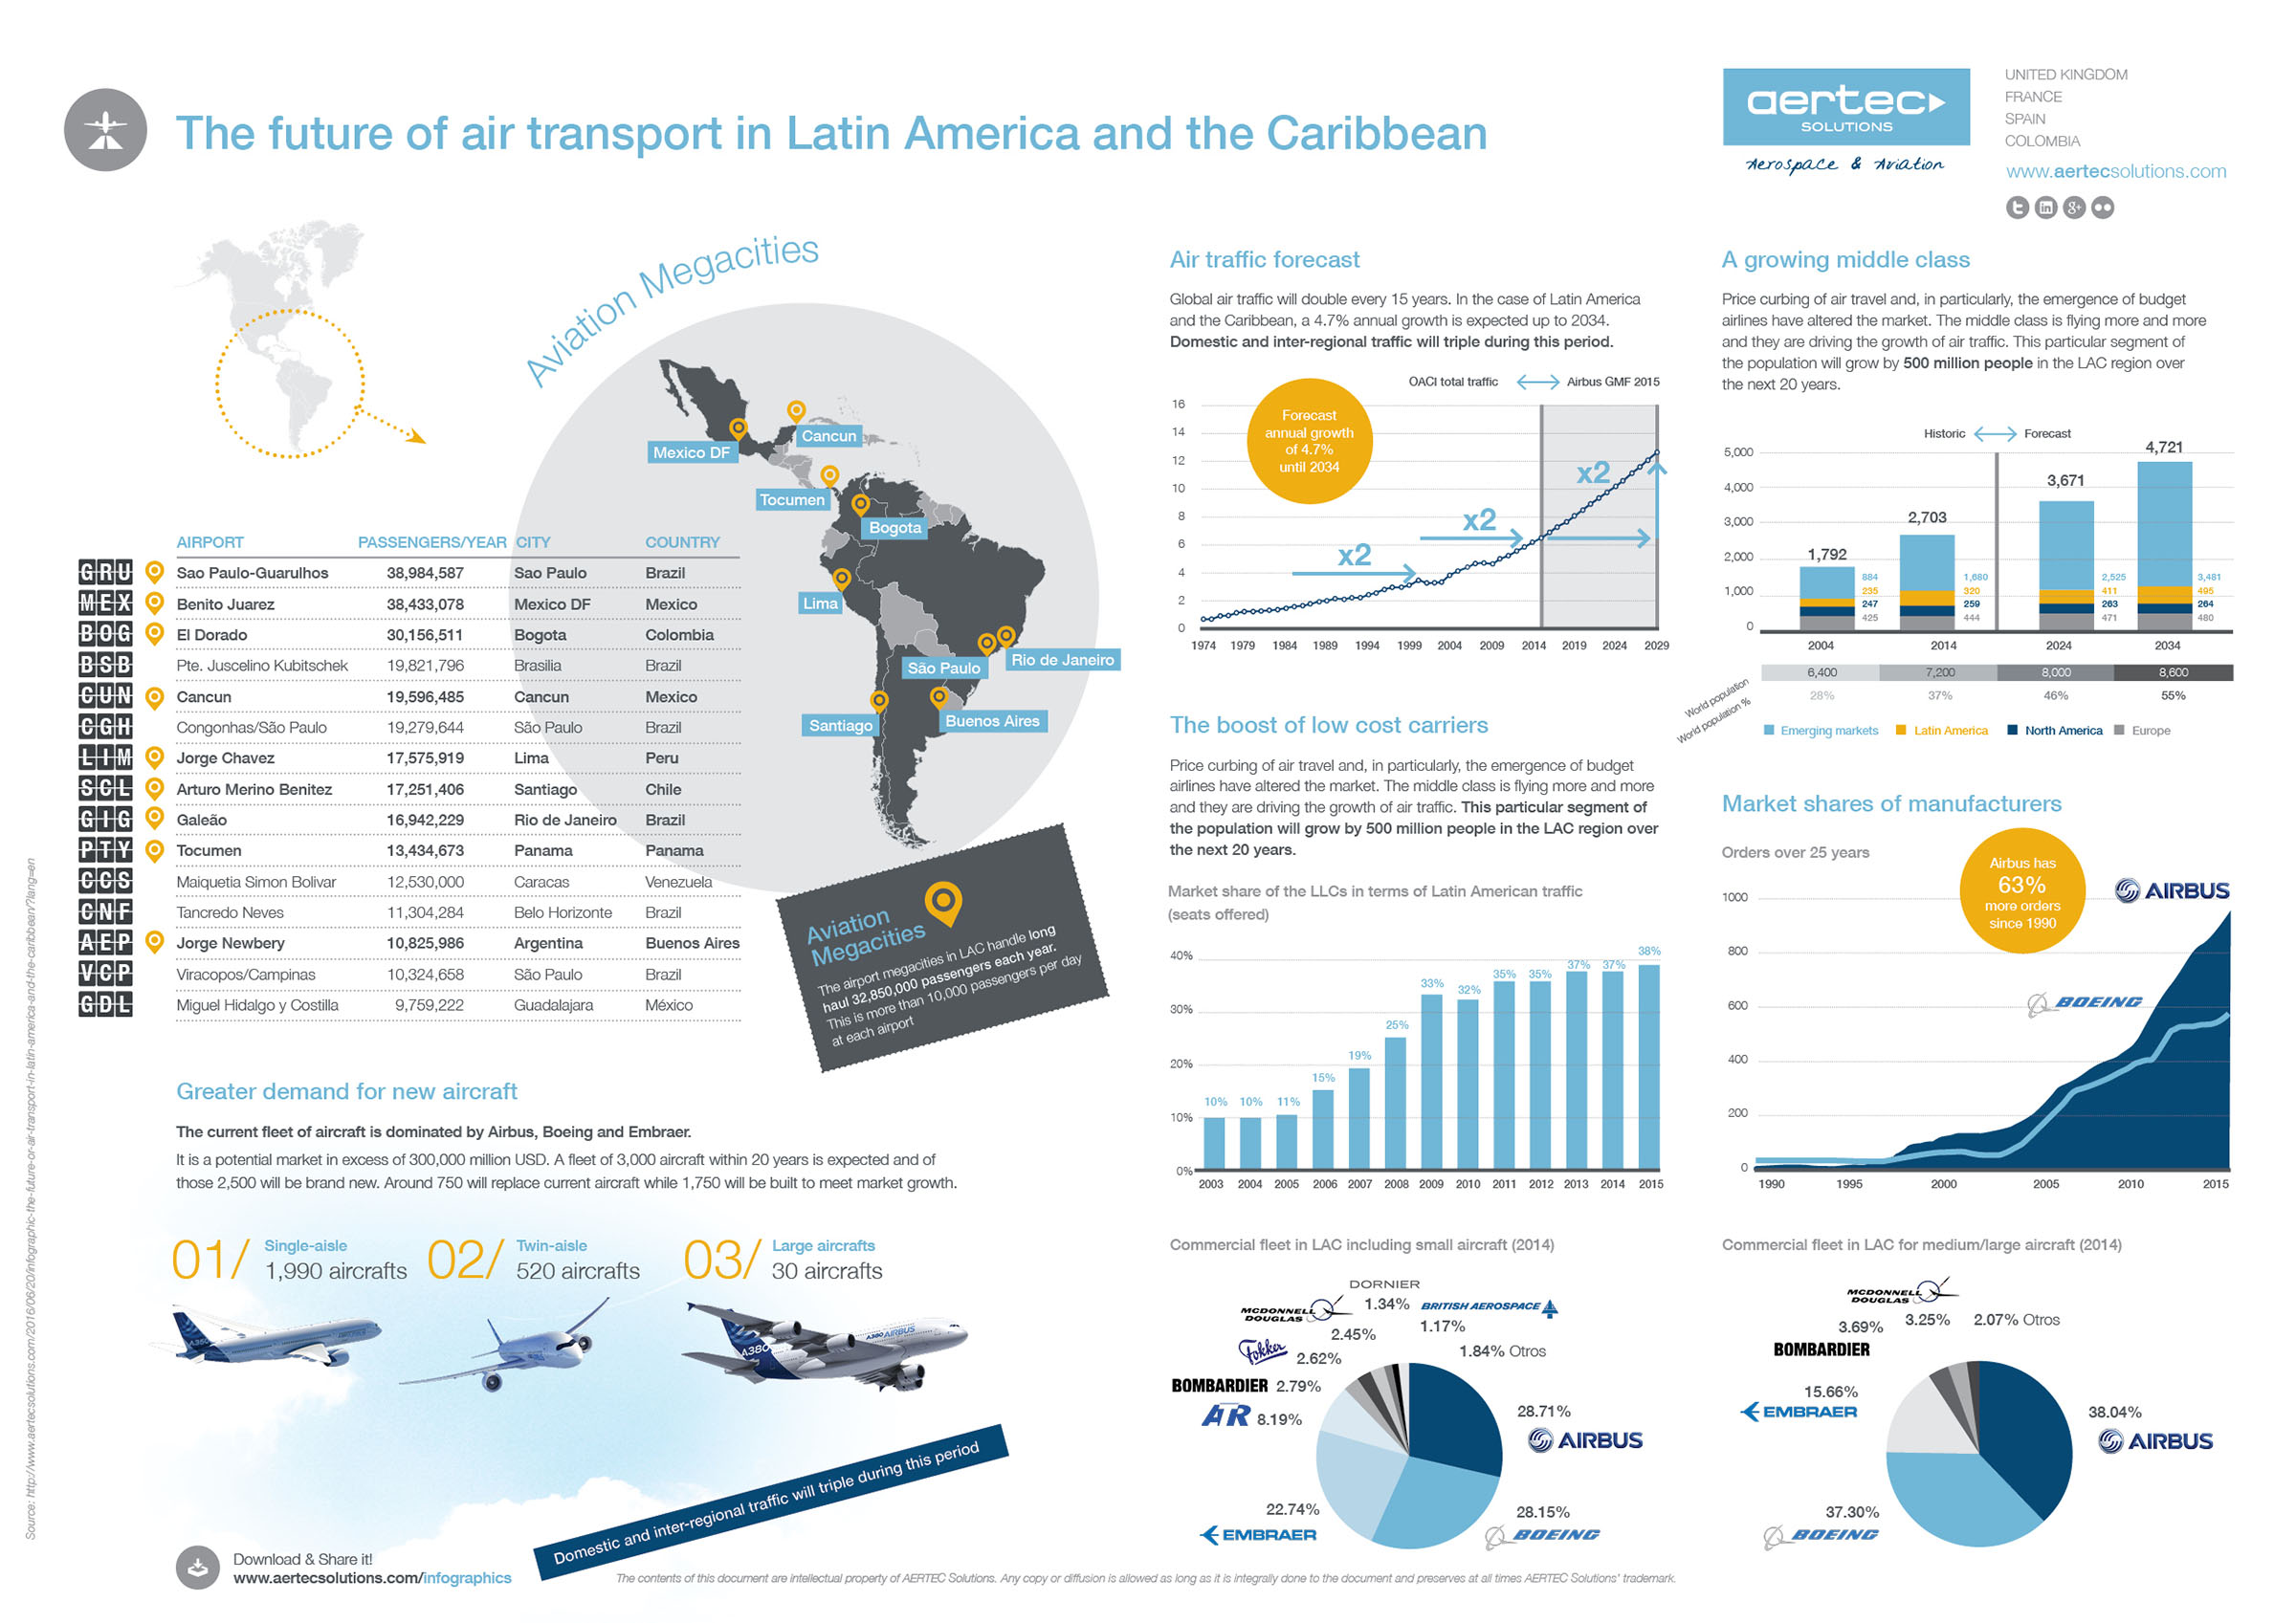 The future of air transport in Latin America and the Caribbean